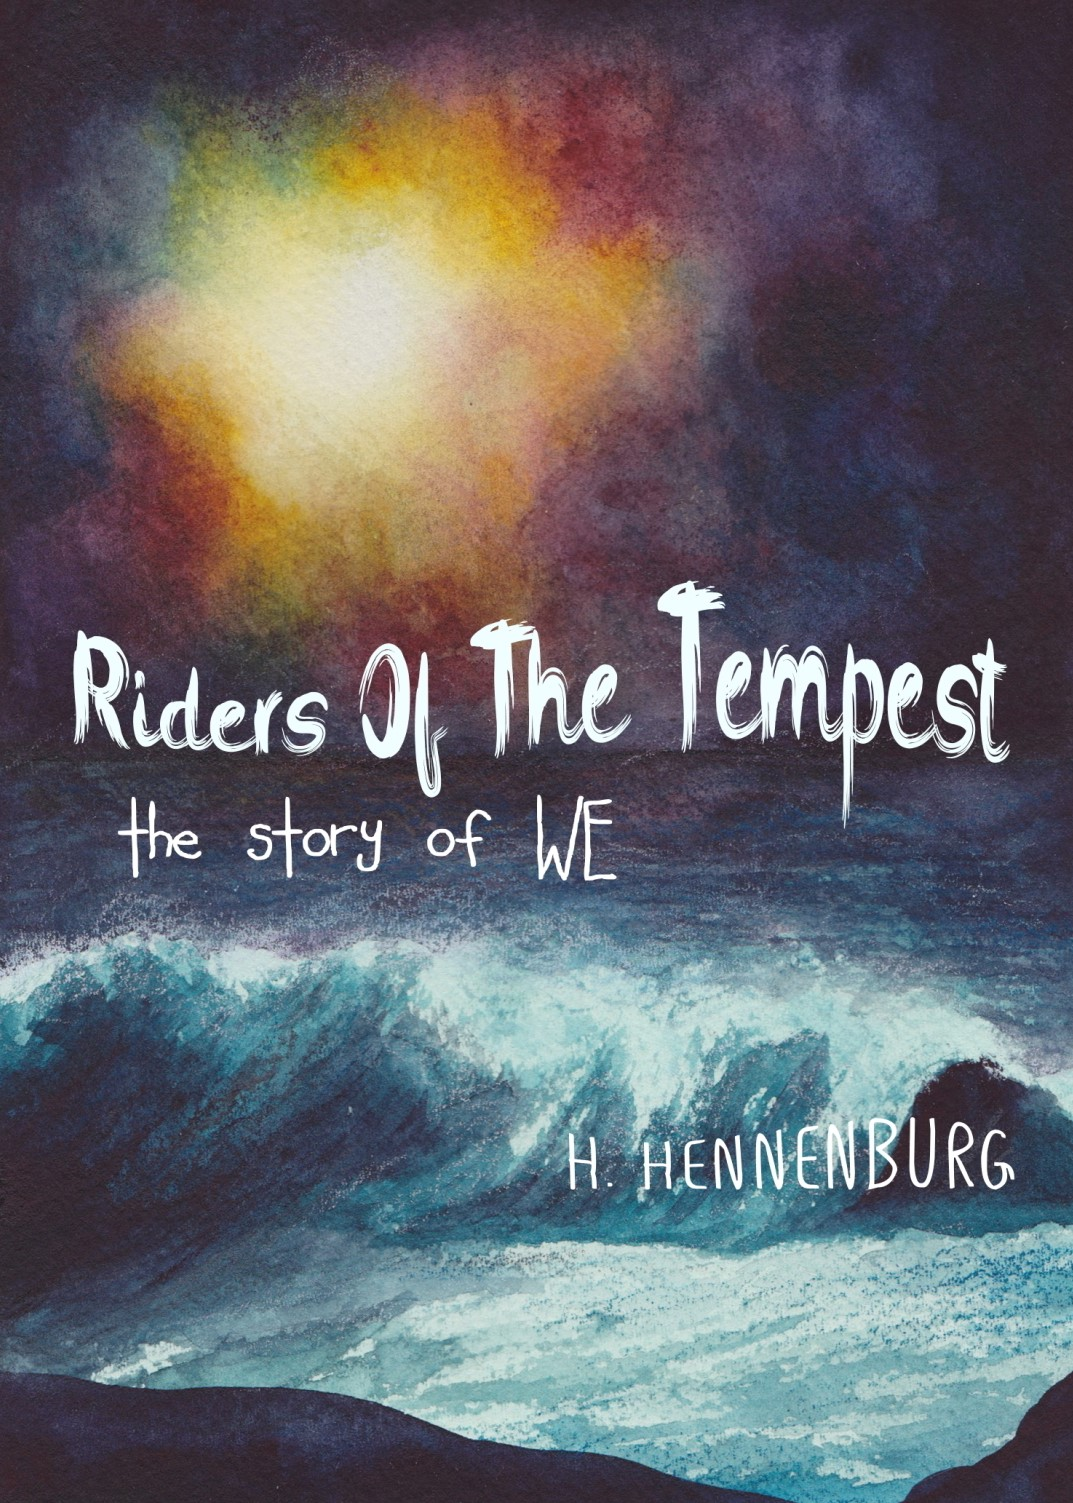 https://www.goodreads.com/book/show/53409679-riders-of-the-tempest